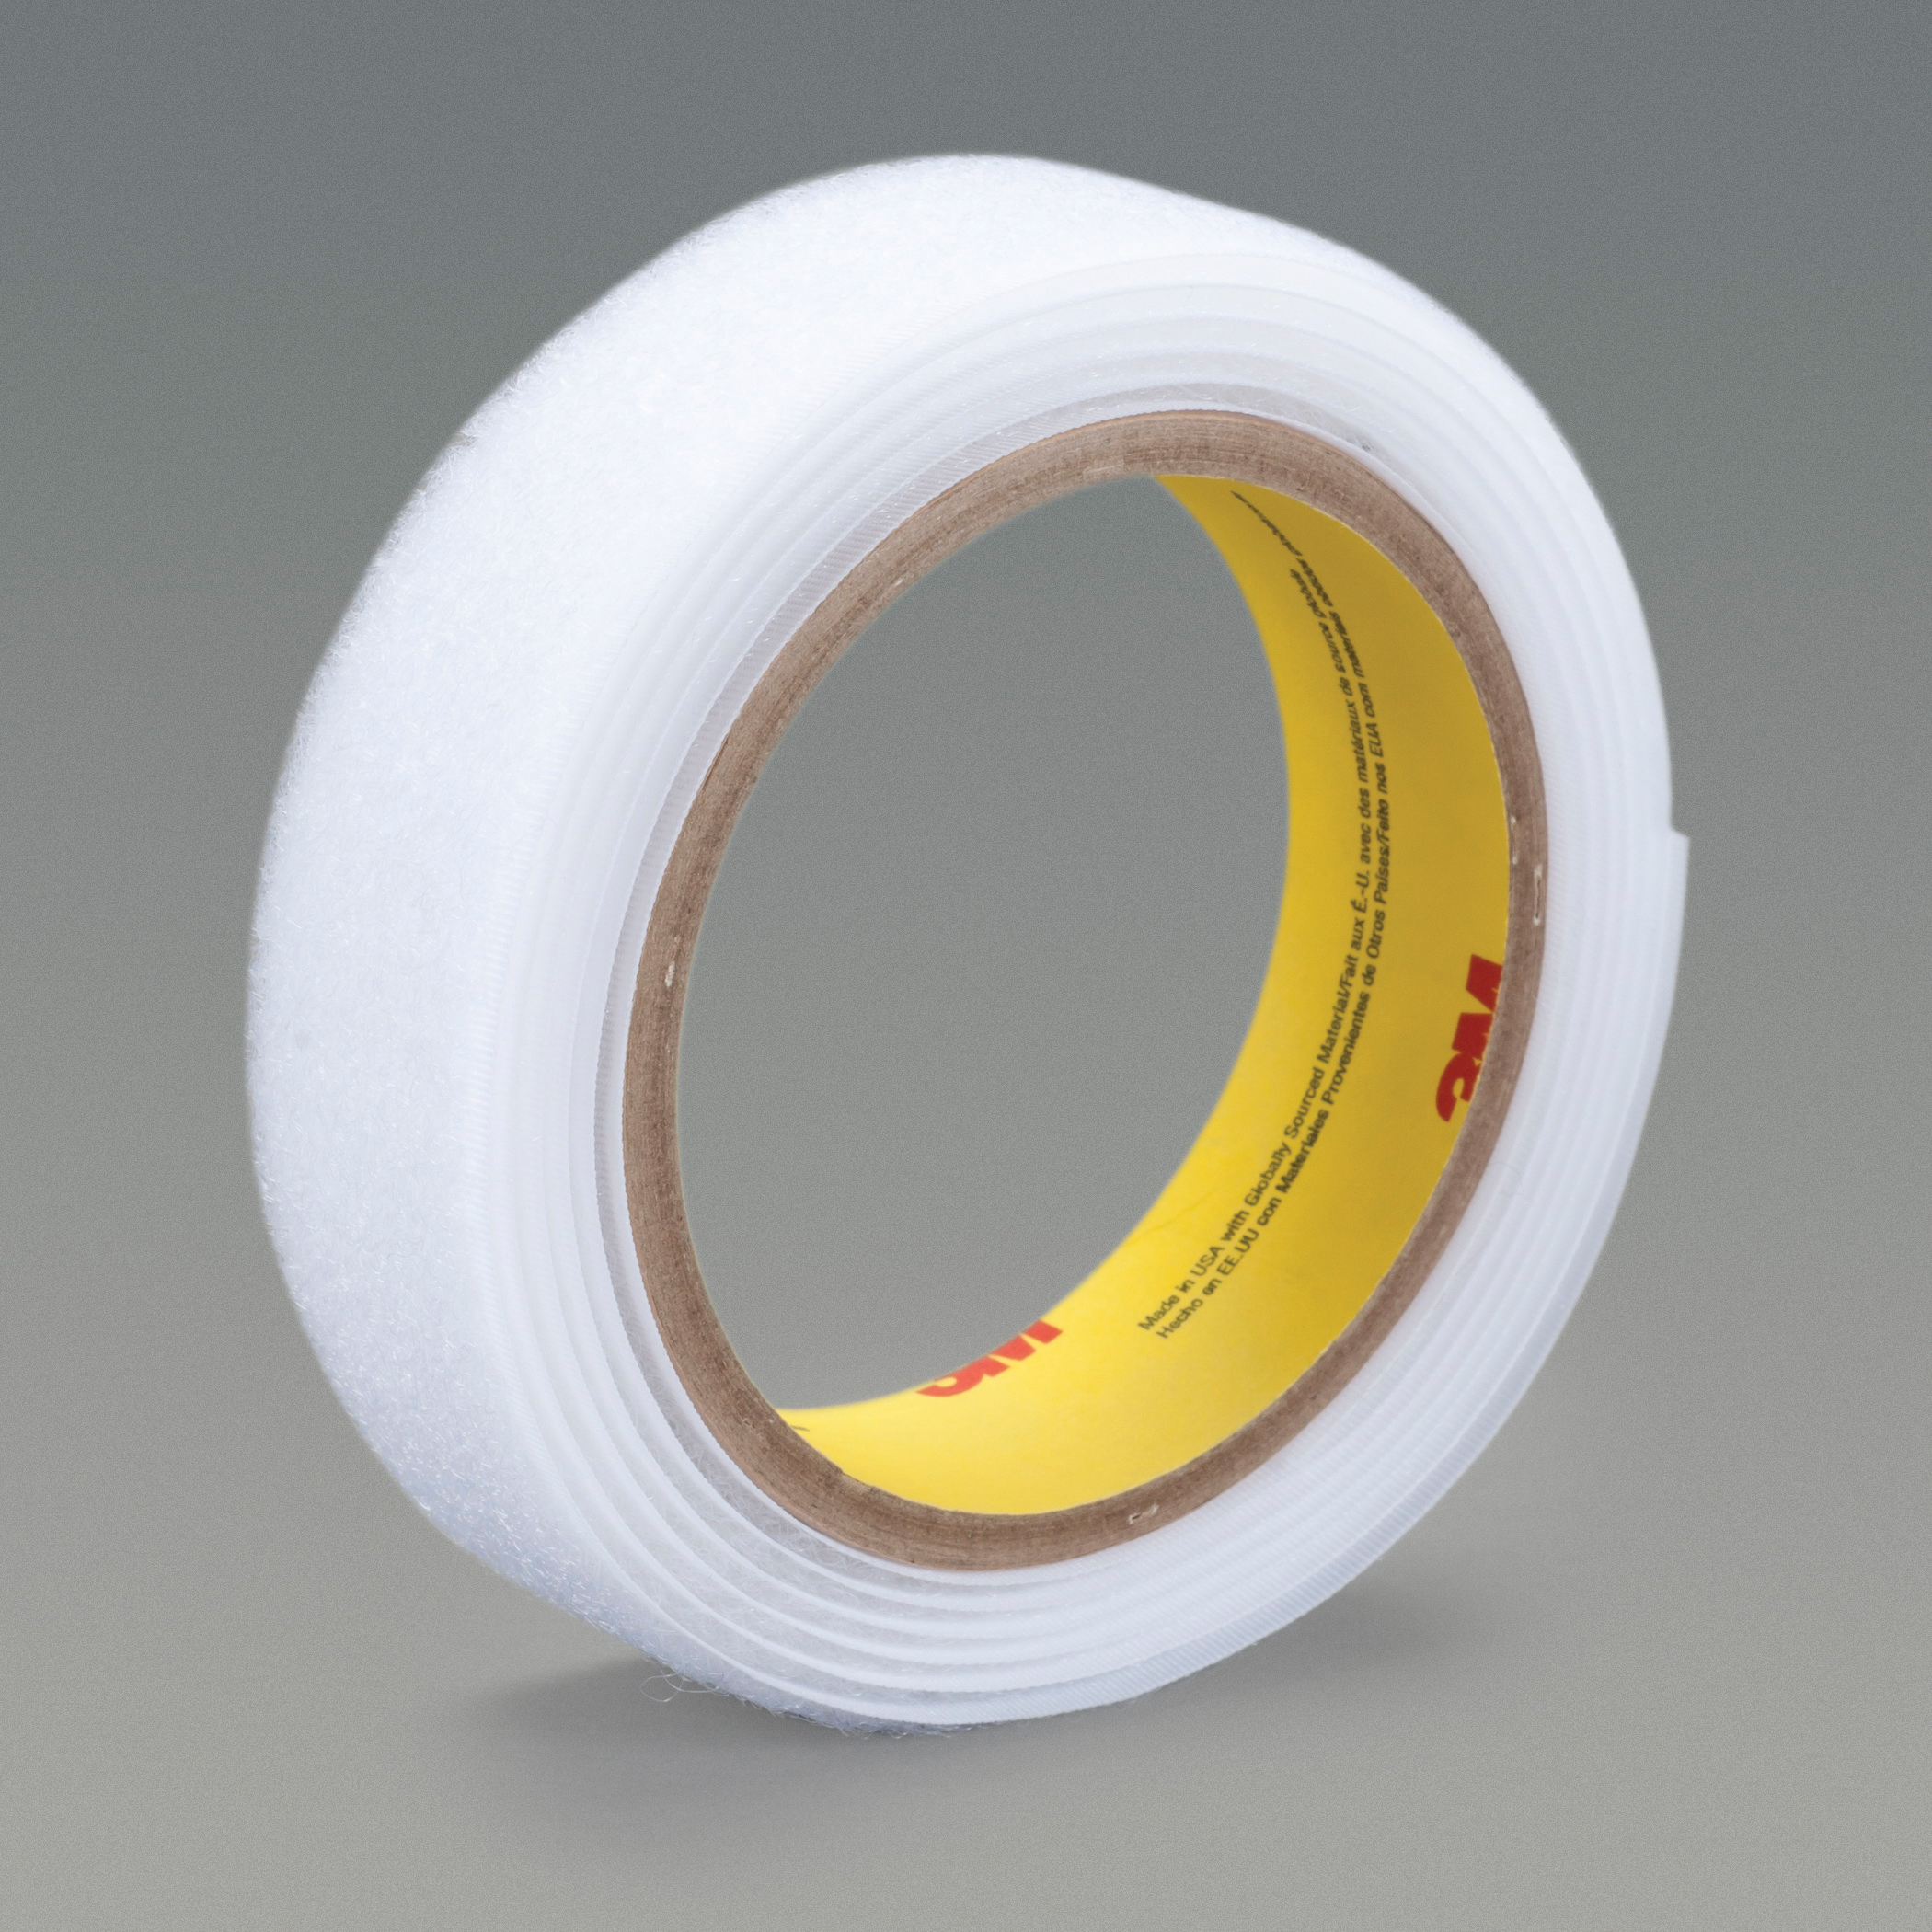 3M™ 021200-86256 SJ3527N Reclosable Loop Fastener Tape, 50 yd L x 2 in W, 0.15 in THK Engaged, Synthetic Rubber Adhesive, Woven Nylon Backing, White